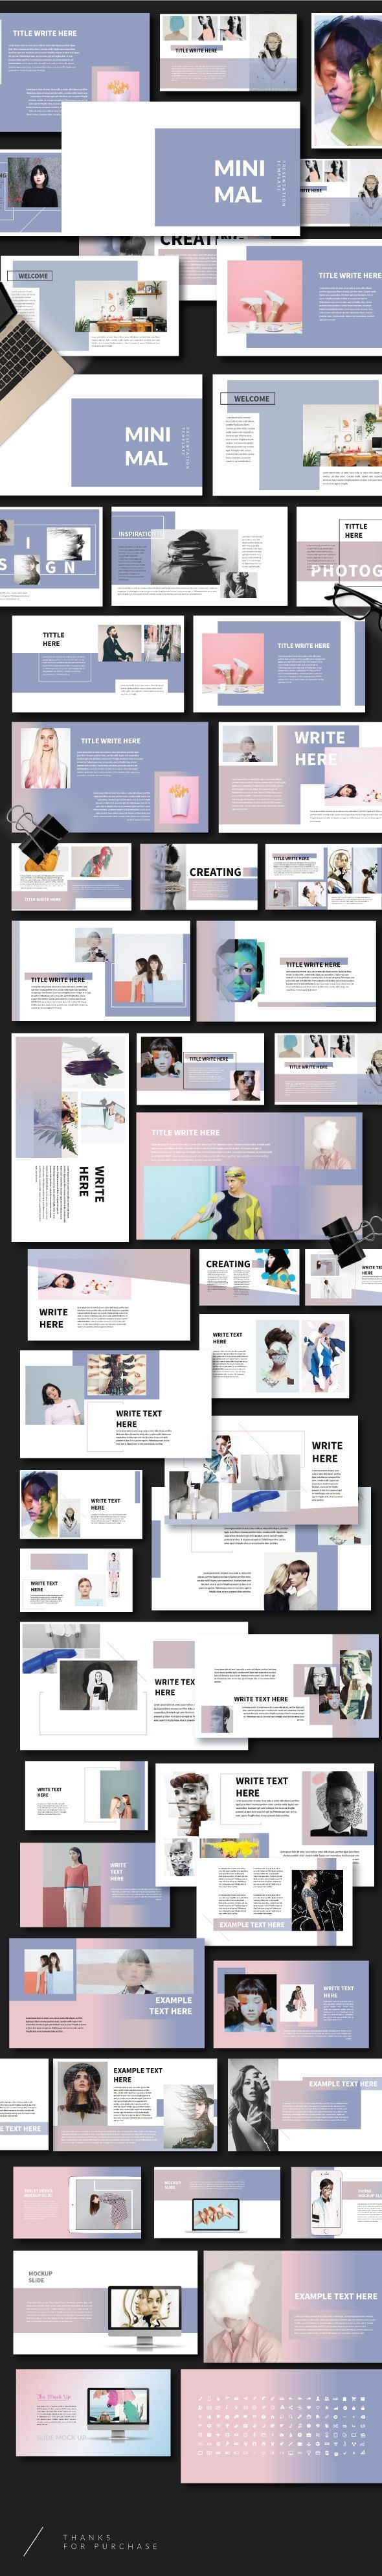 Minimal - Creative Powerpoint Template #awesome #amazing #slide #creative #powerpoint #presentation #theme #template #photooftheday